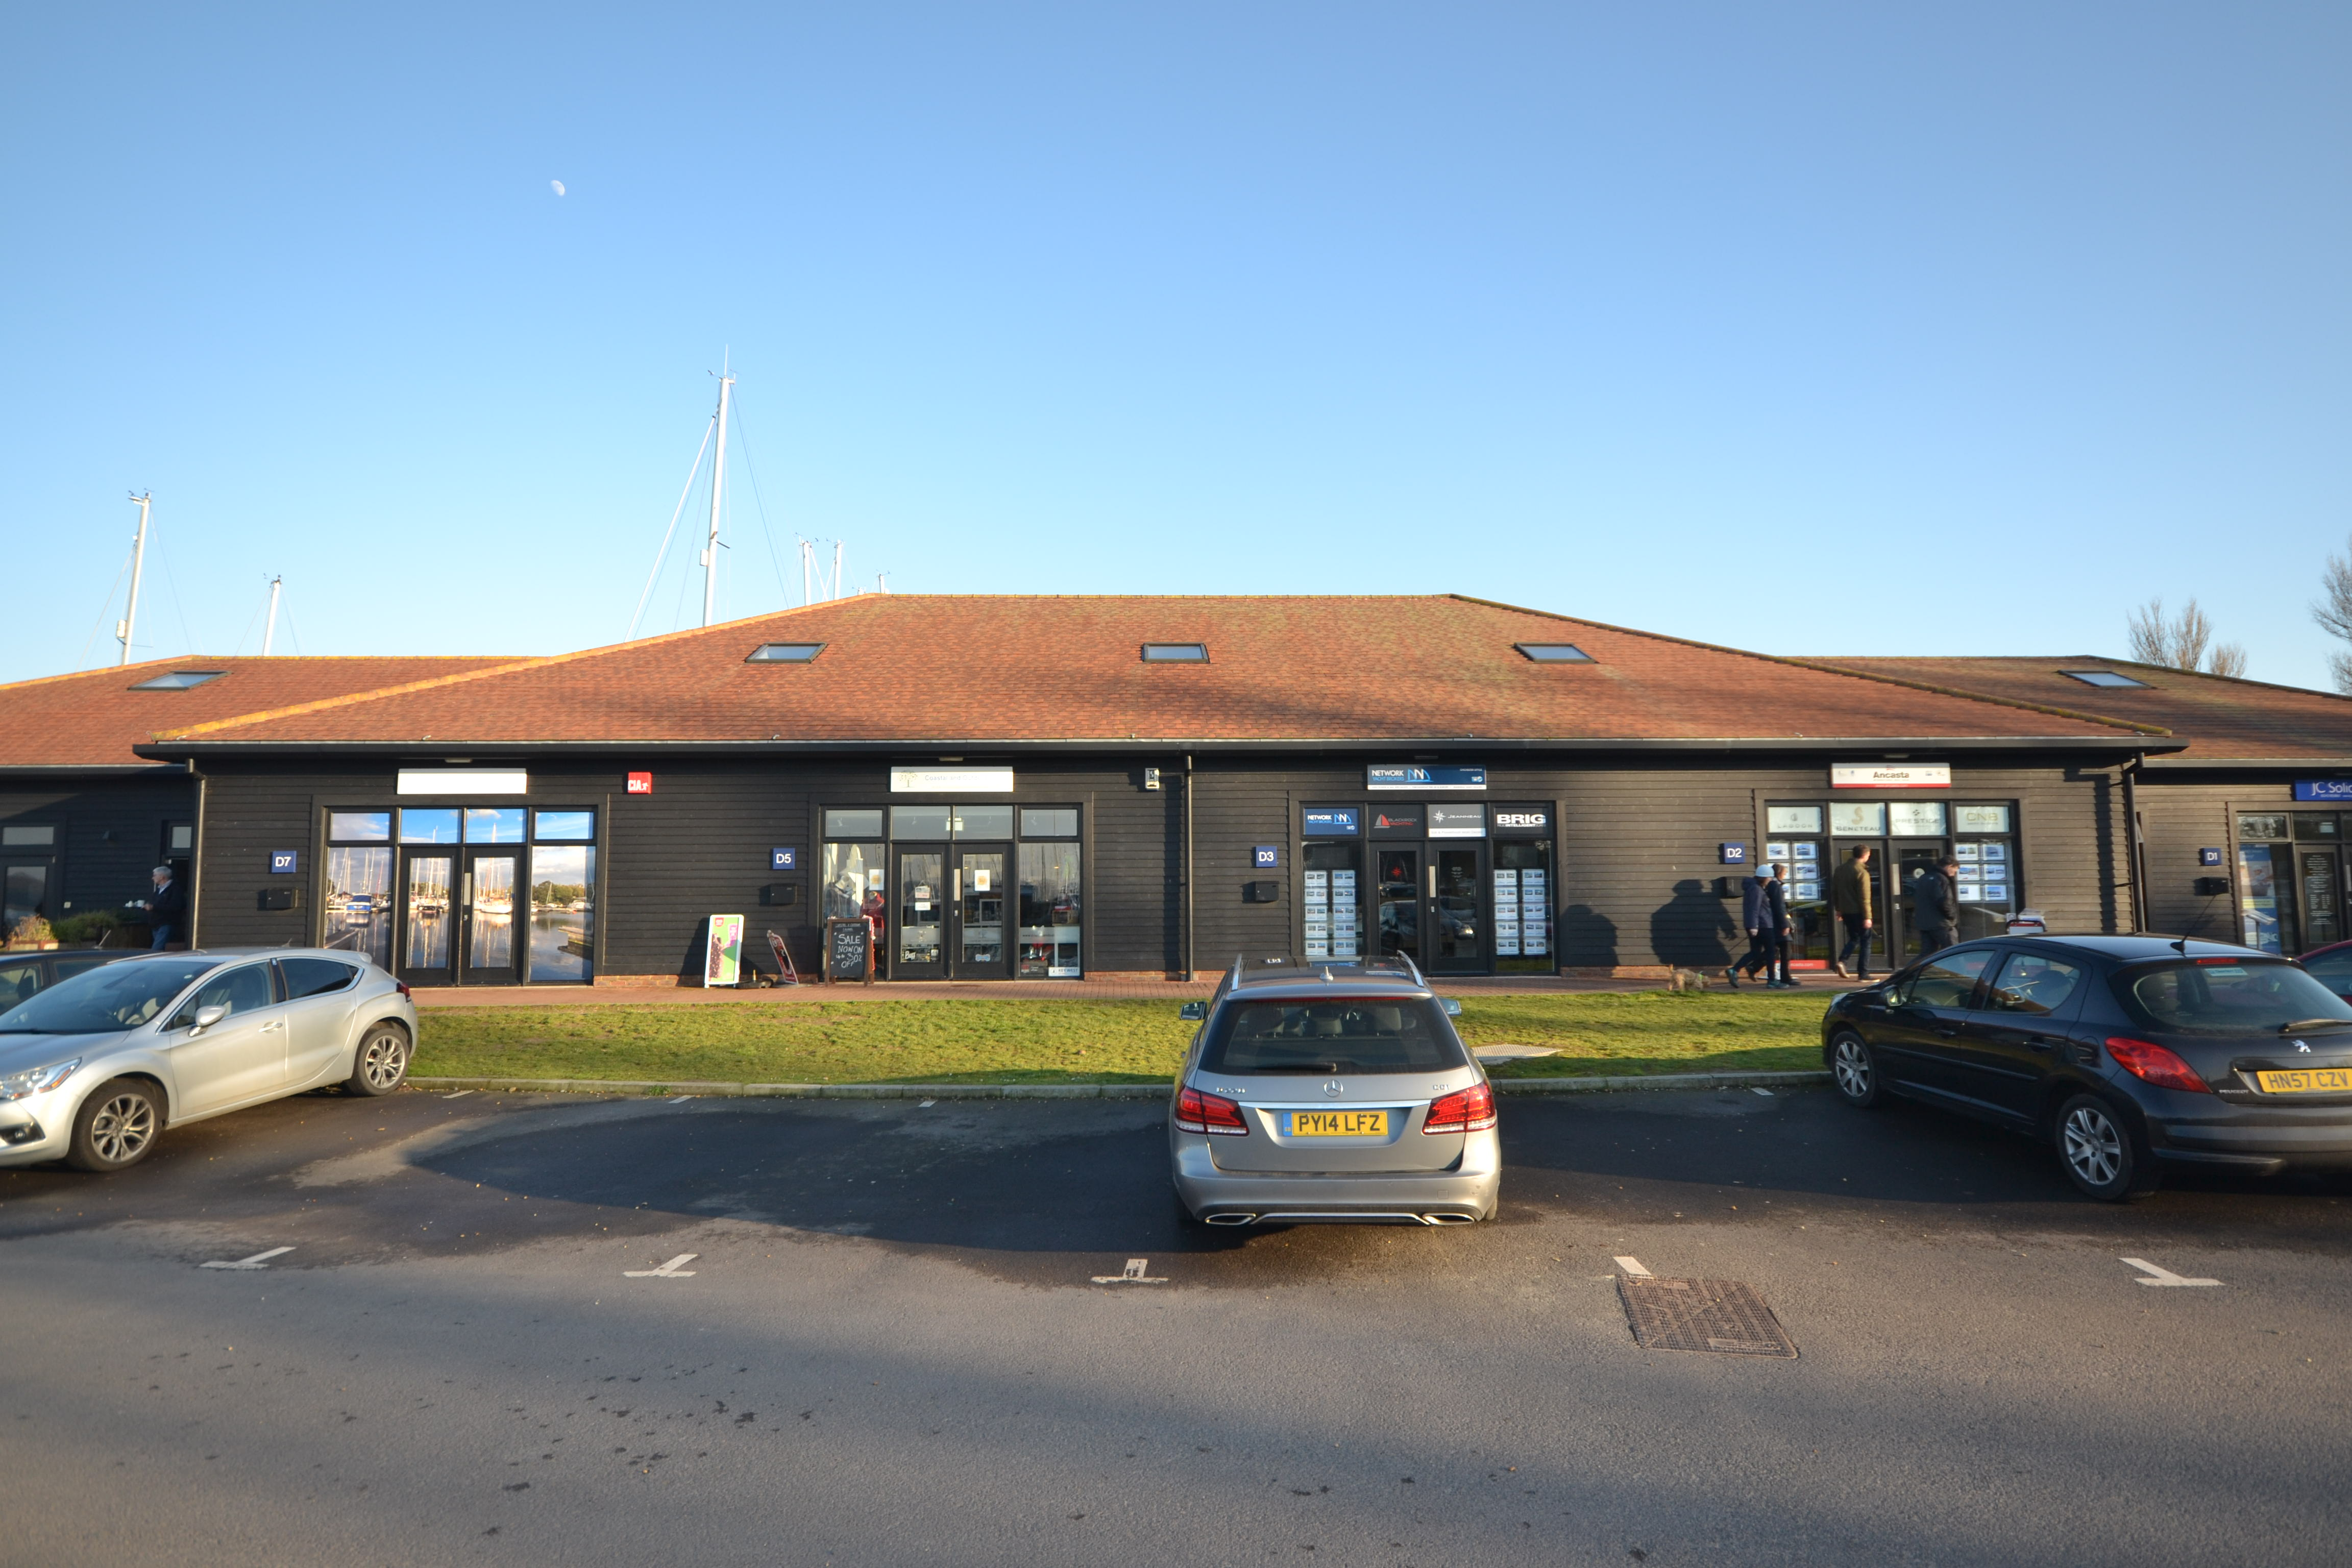 Industrial Park for rent in Chichester. From Henry Adams Commercial